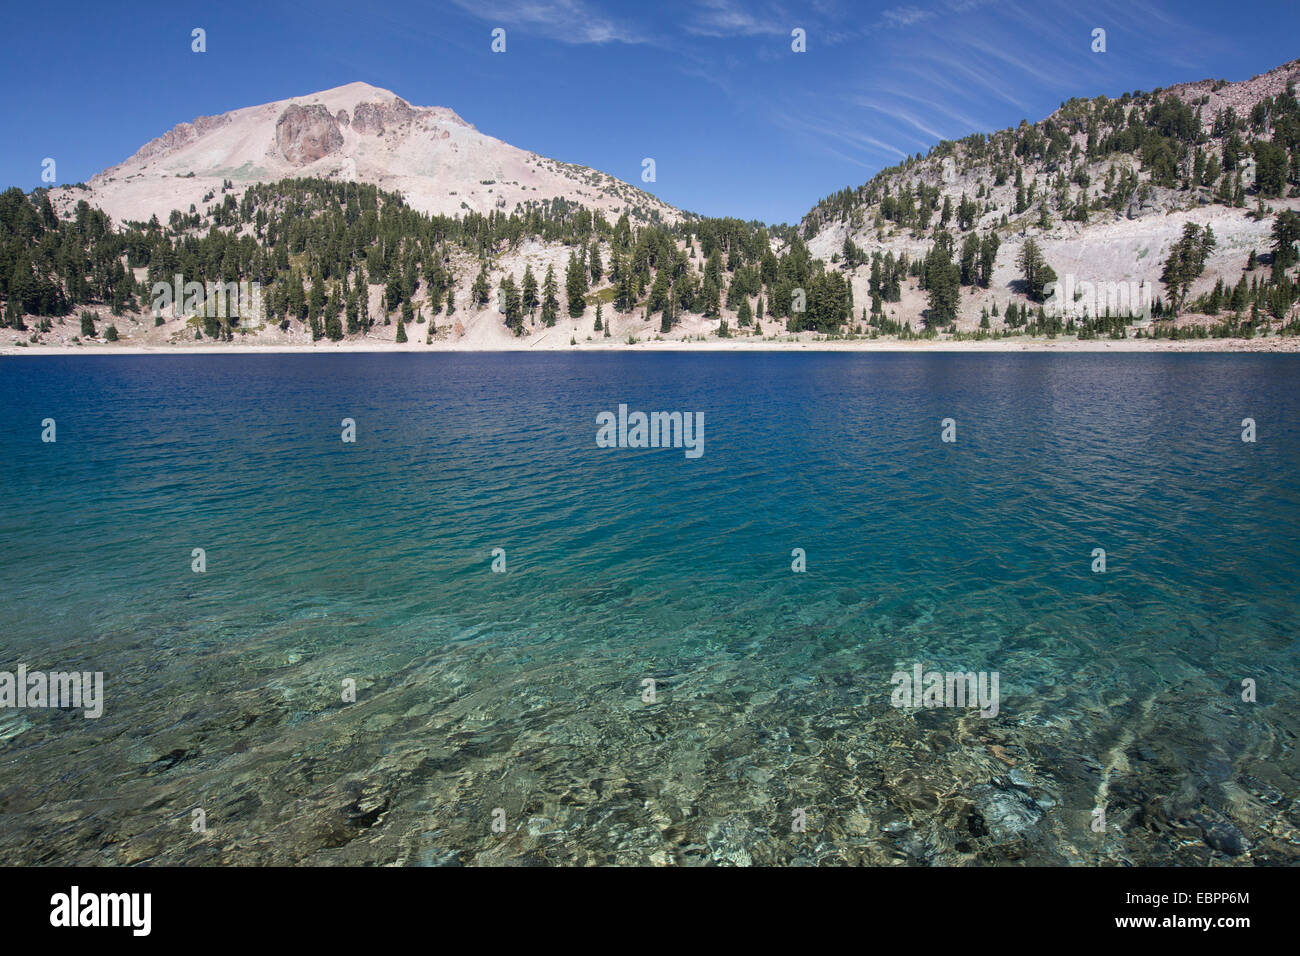 Hellen Lake with Mount Lassen, 3187 m, in the background, Lassen Volcanic National Park, California, United States - Stock Image